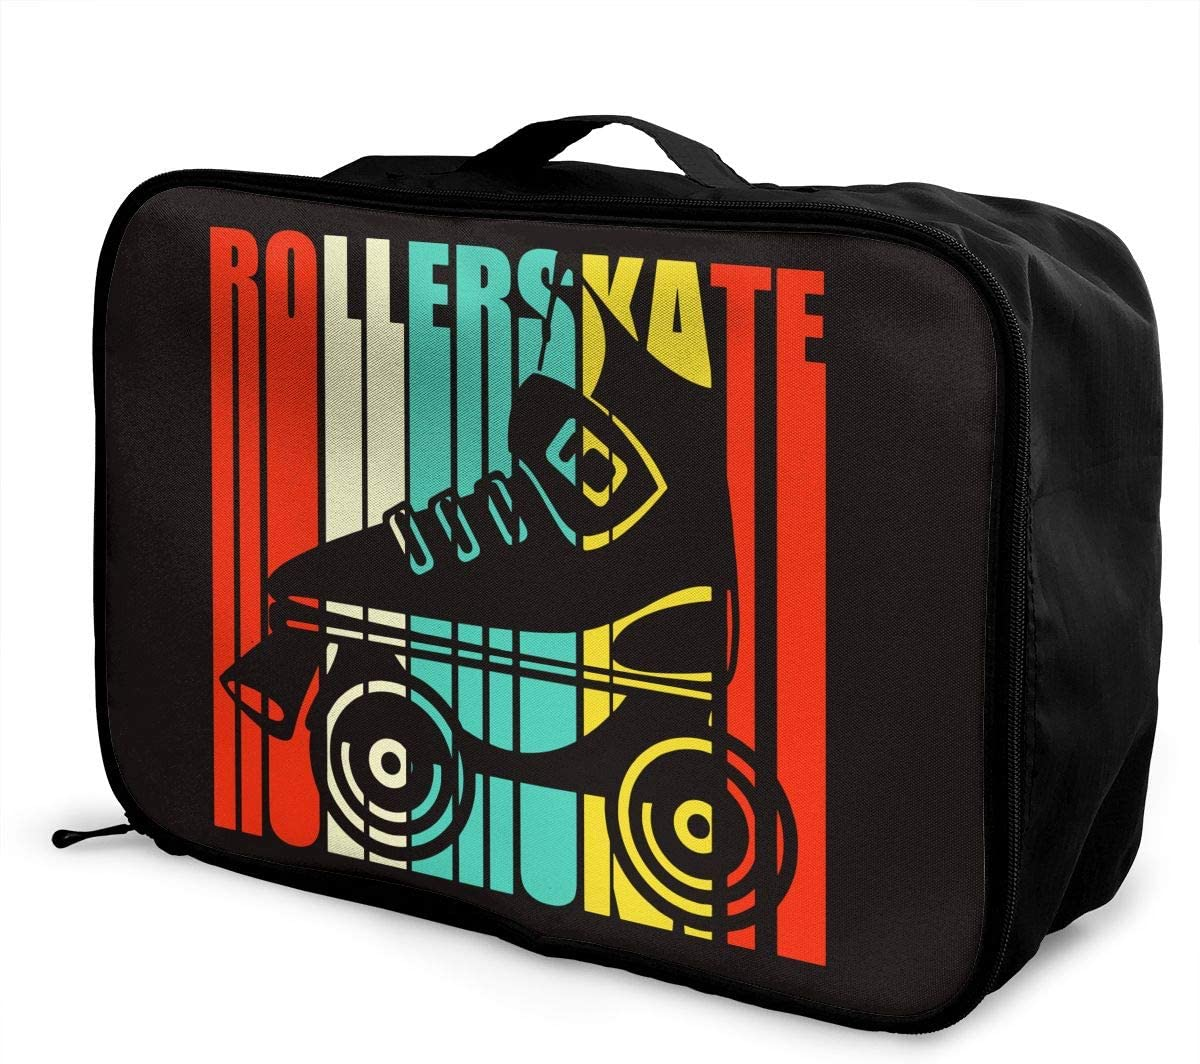 Retro Roller Skate Tote Lightweight Large Capacity Portable Outdoor Luggage Trolley Bag